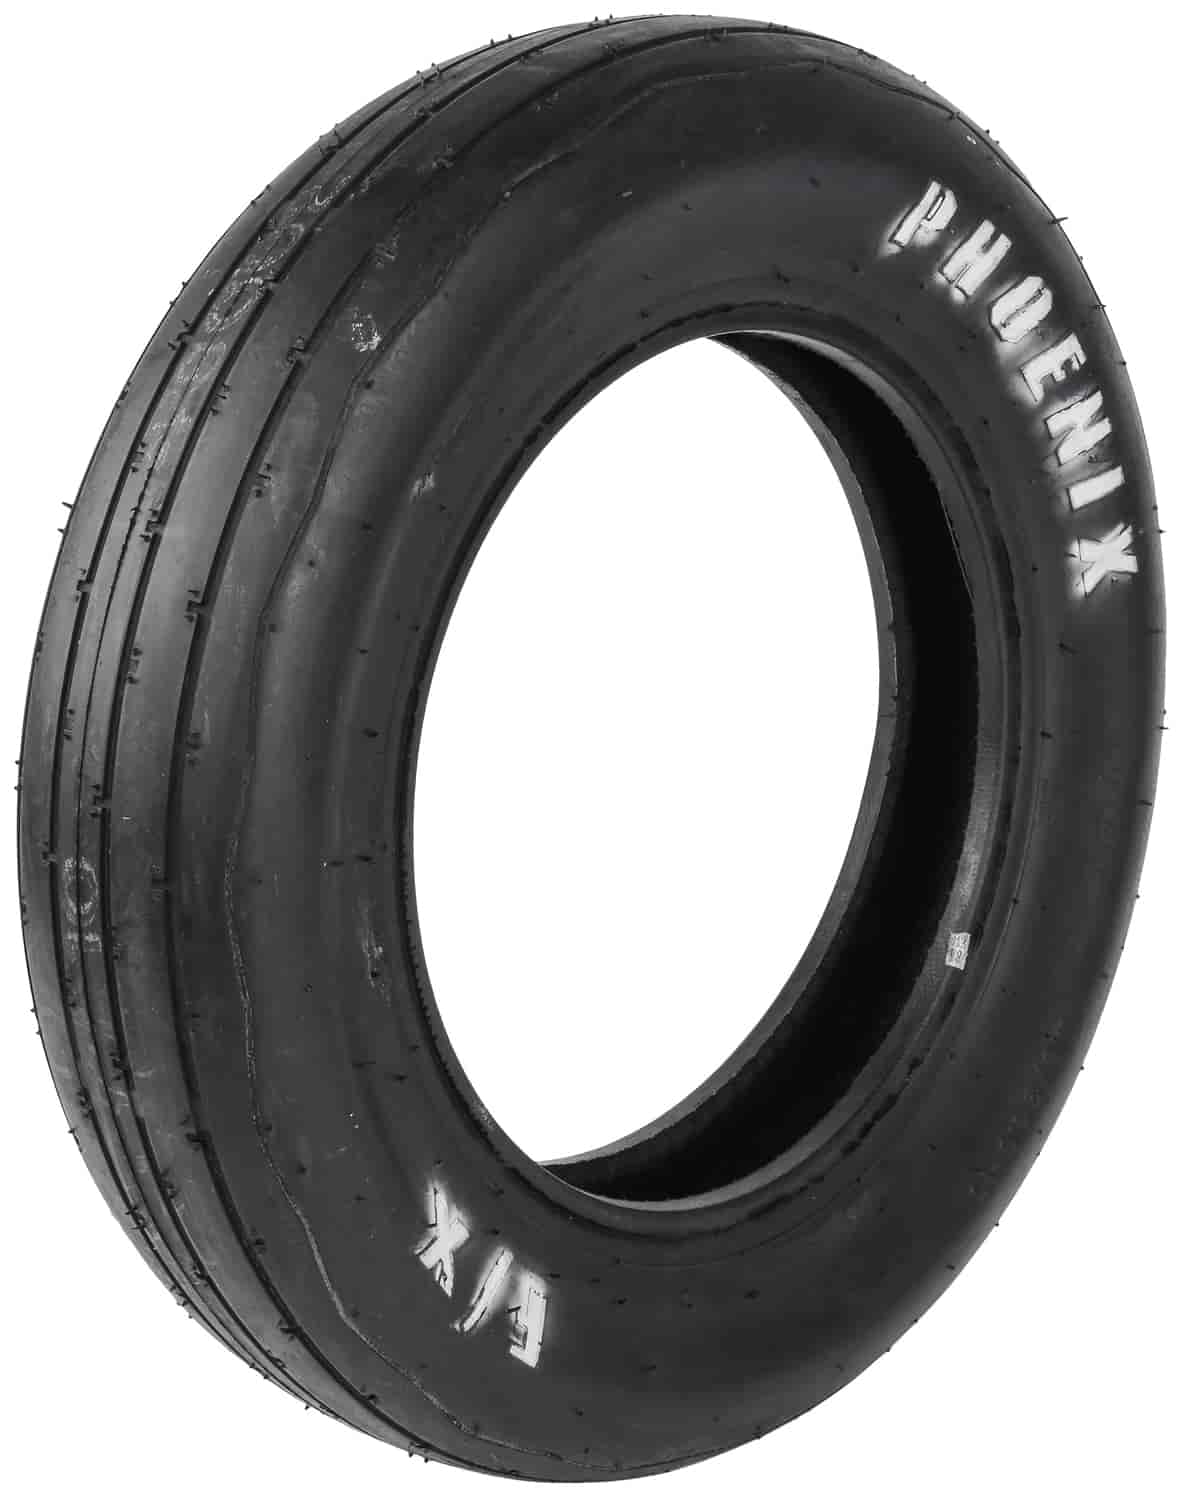 Phoenix Drag Tires PH183